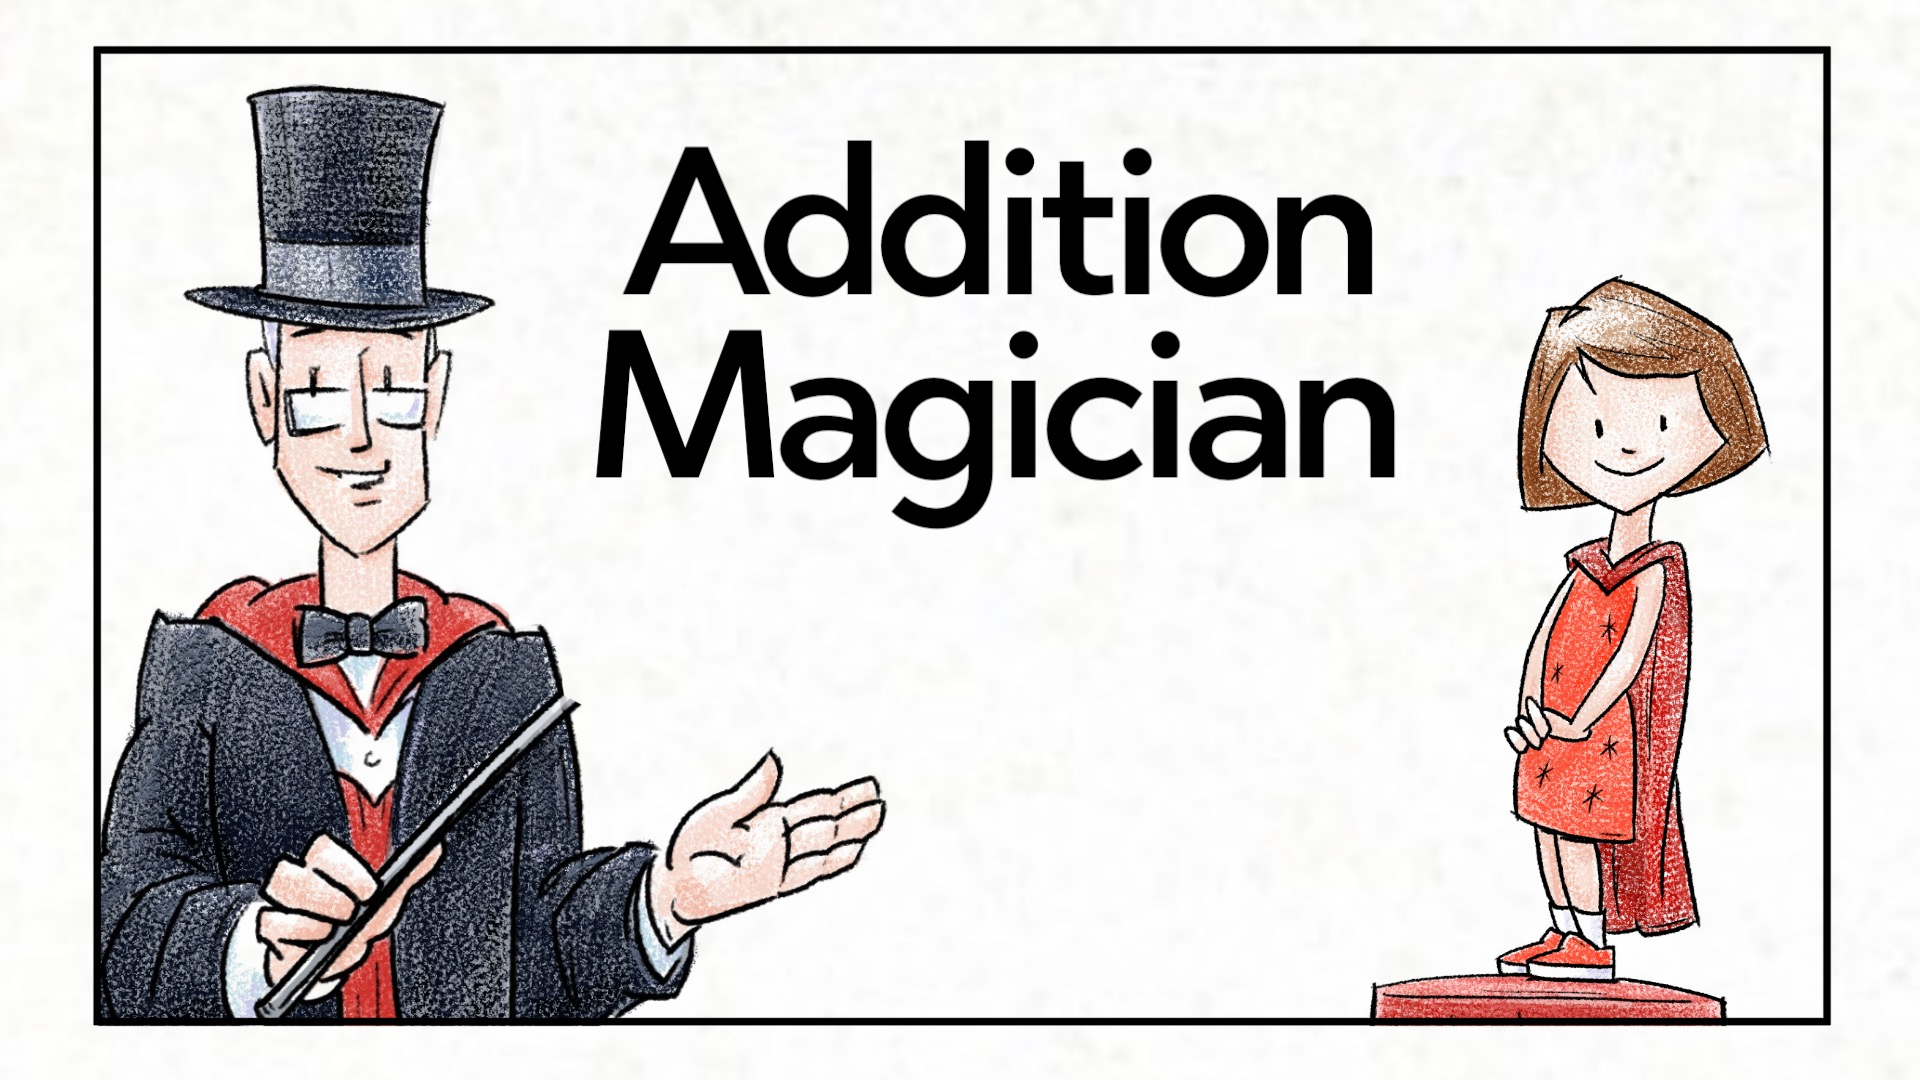 Addition Magician 2019 PREVIEW.jpg